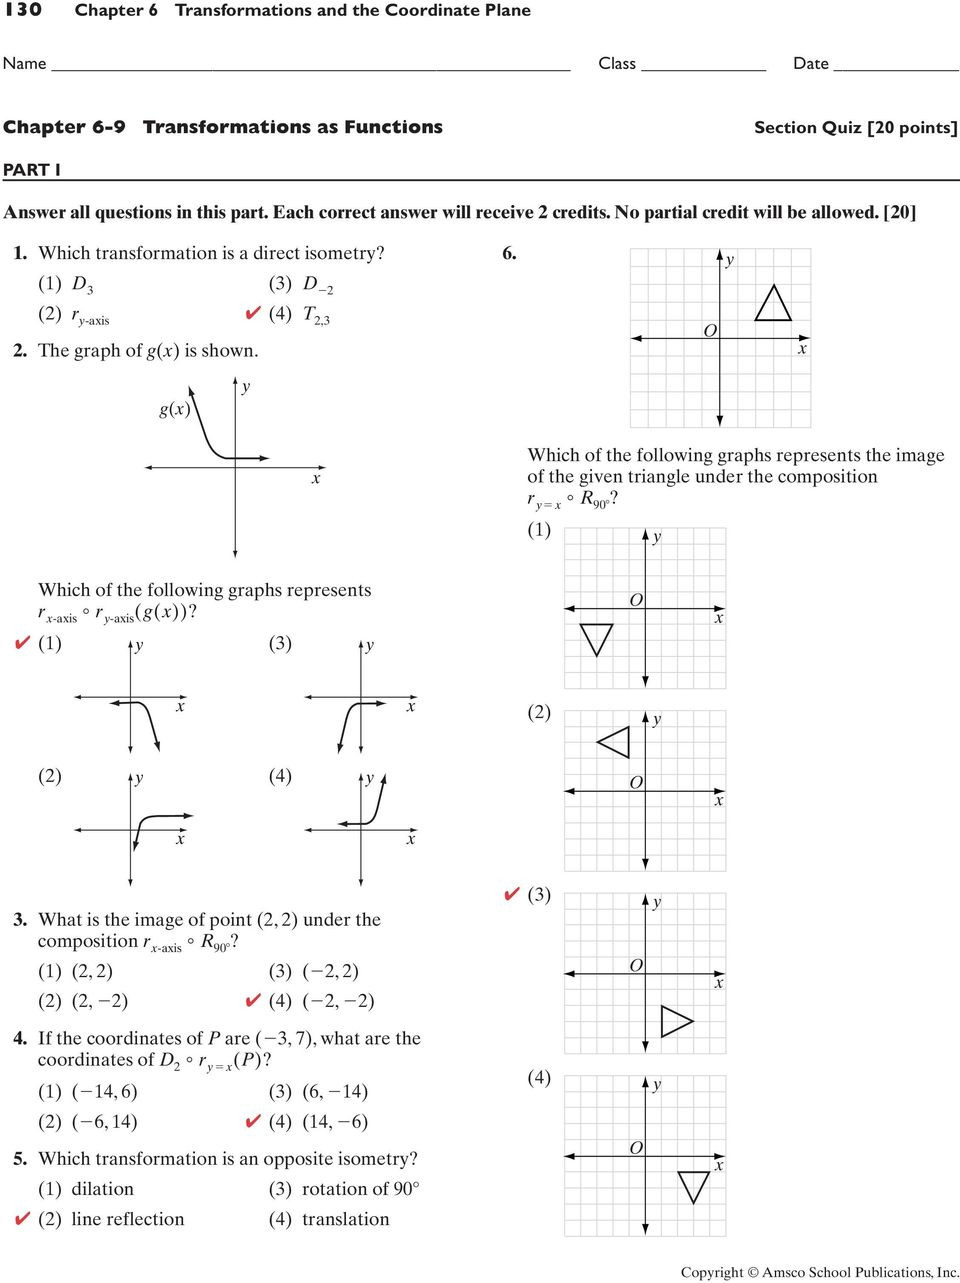 Composition Of Transformations Worksheet 116 Chapter 6 Transformations and the Coordinate Plane Pdf